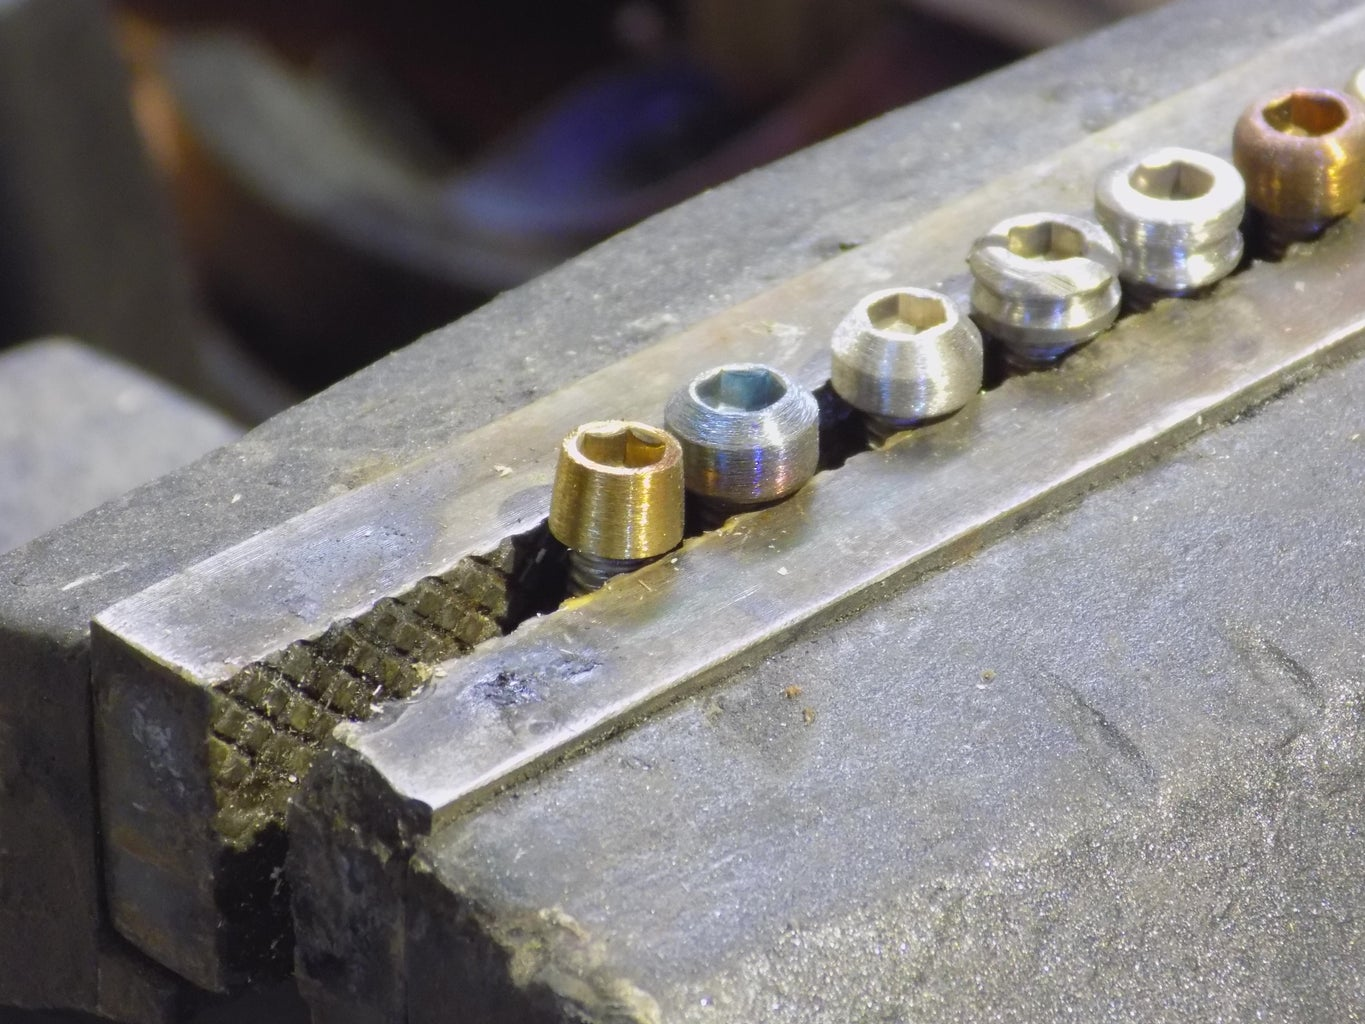 Step 2: Shaping Standard Bolts